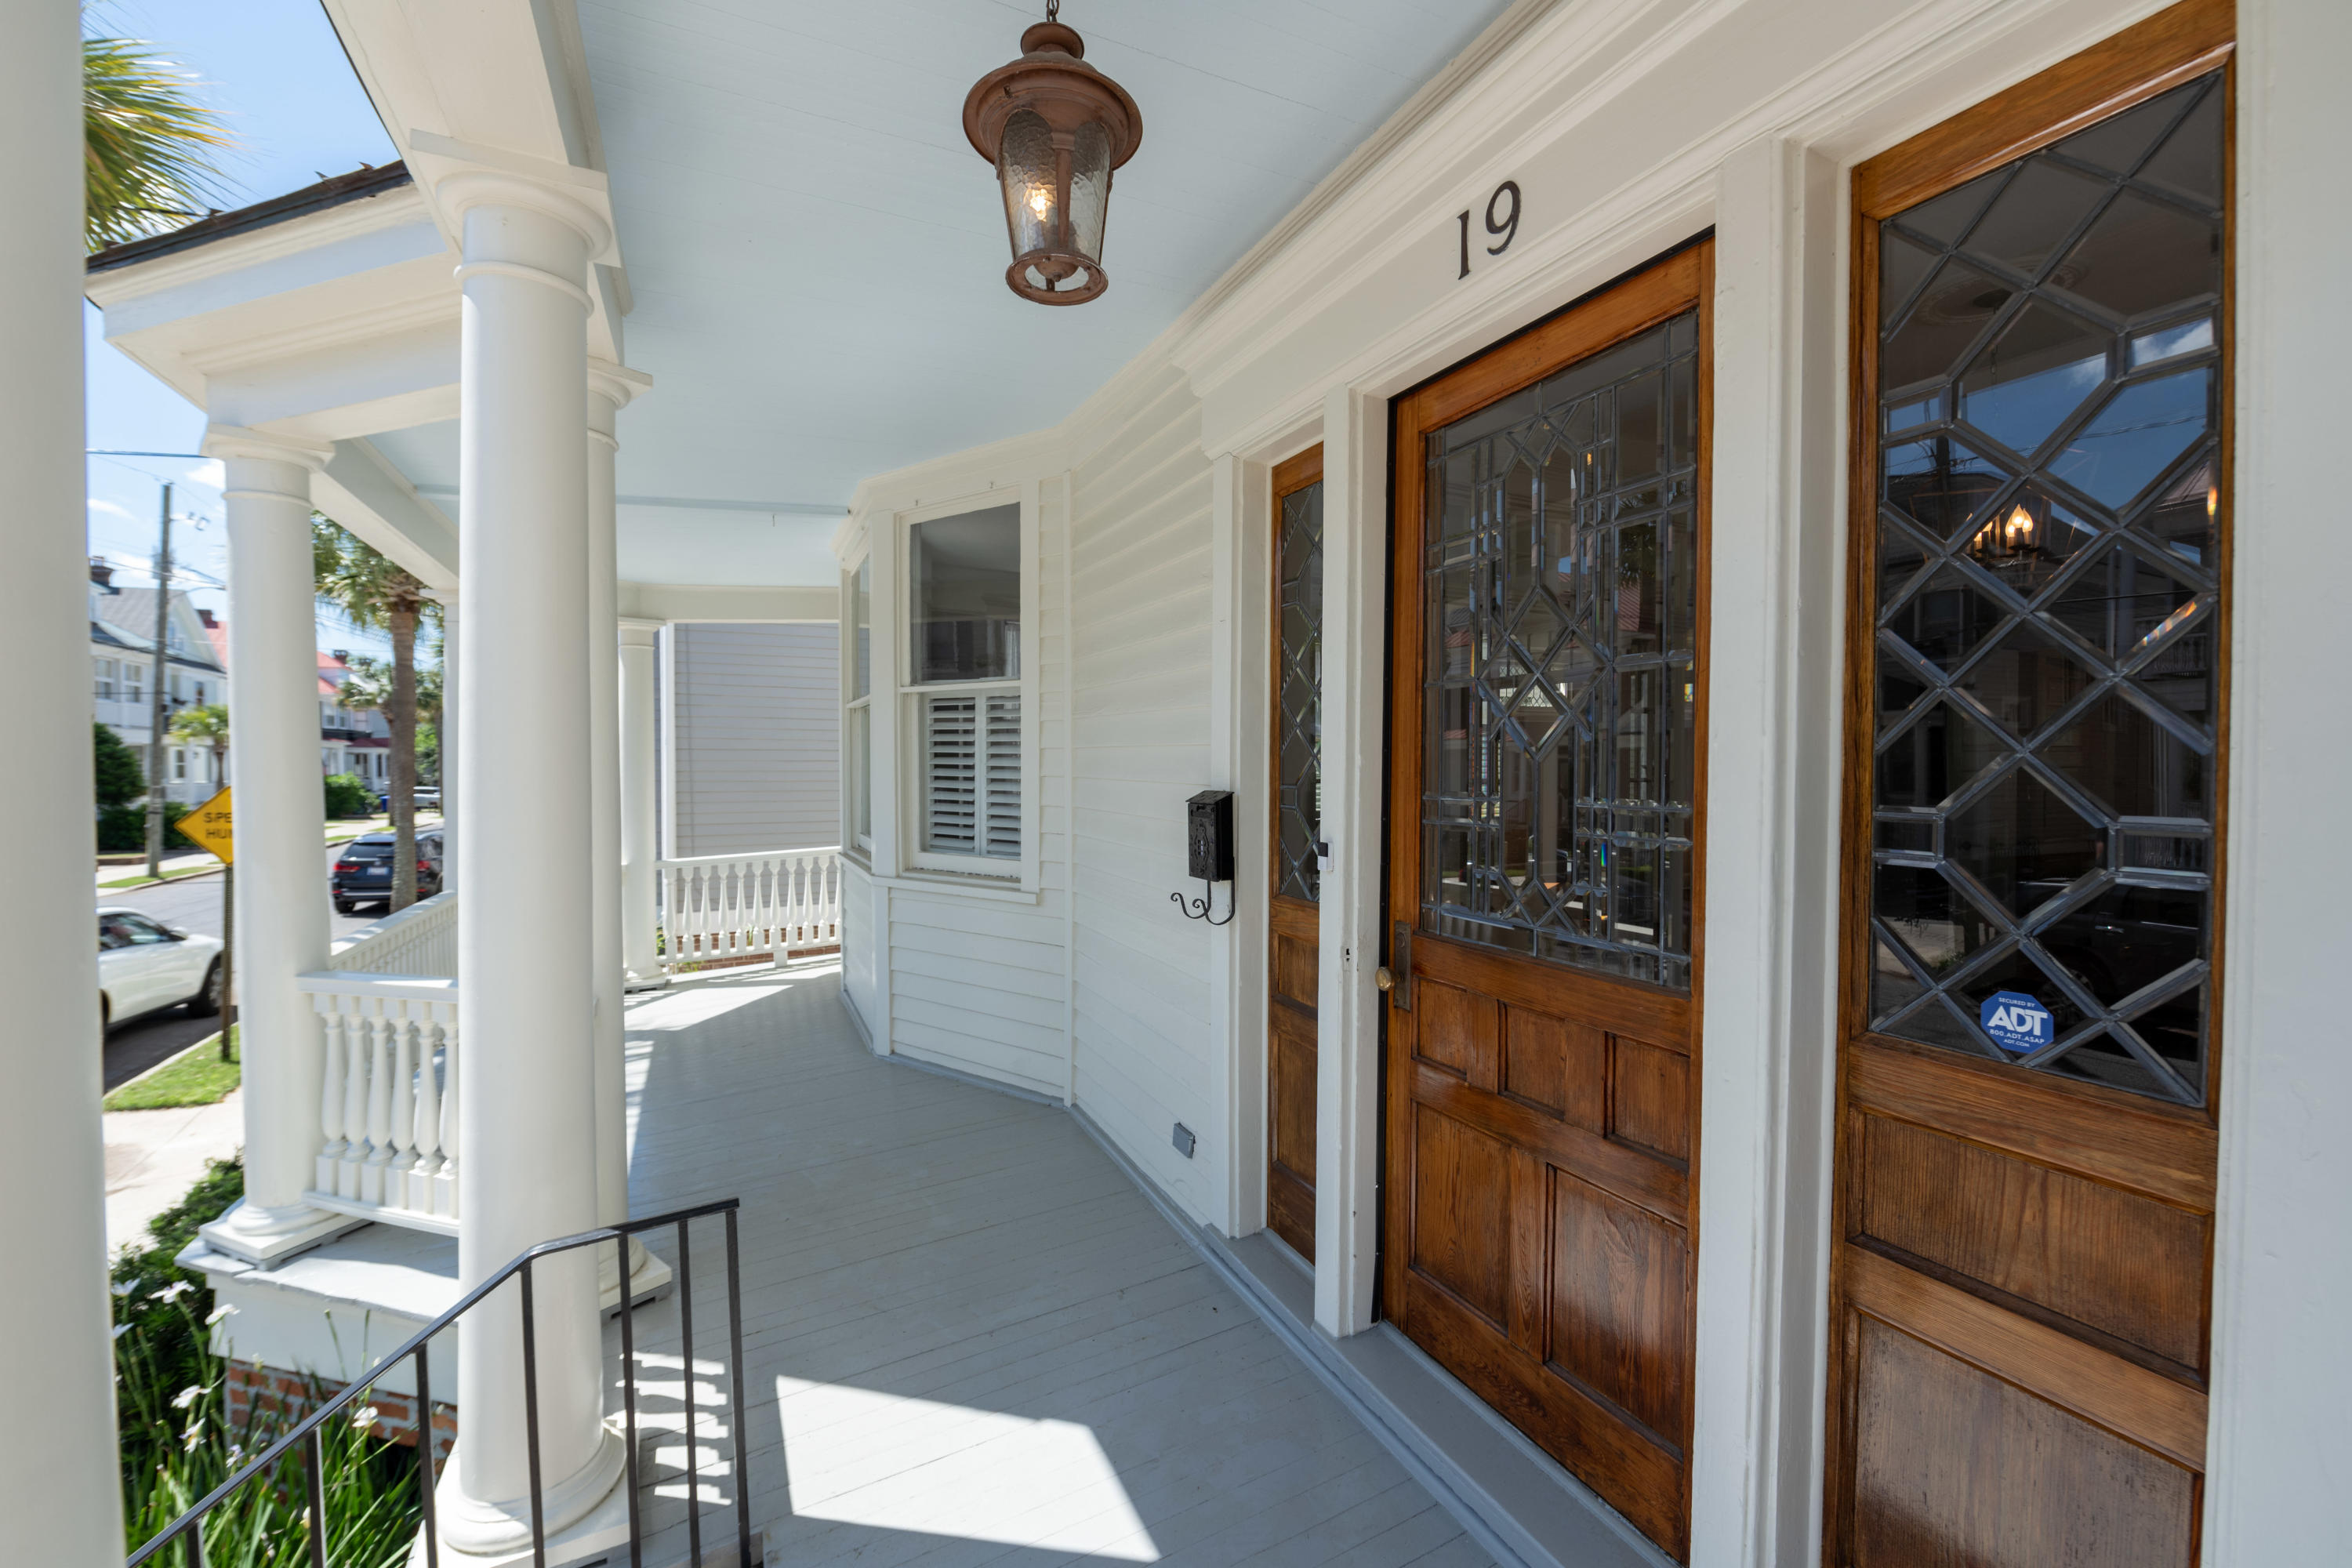 South of Broad Homes For Sale - 19 Colonial, Charleston, SC - 18